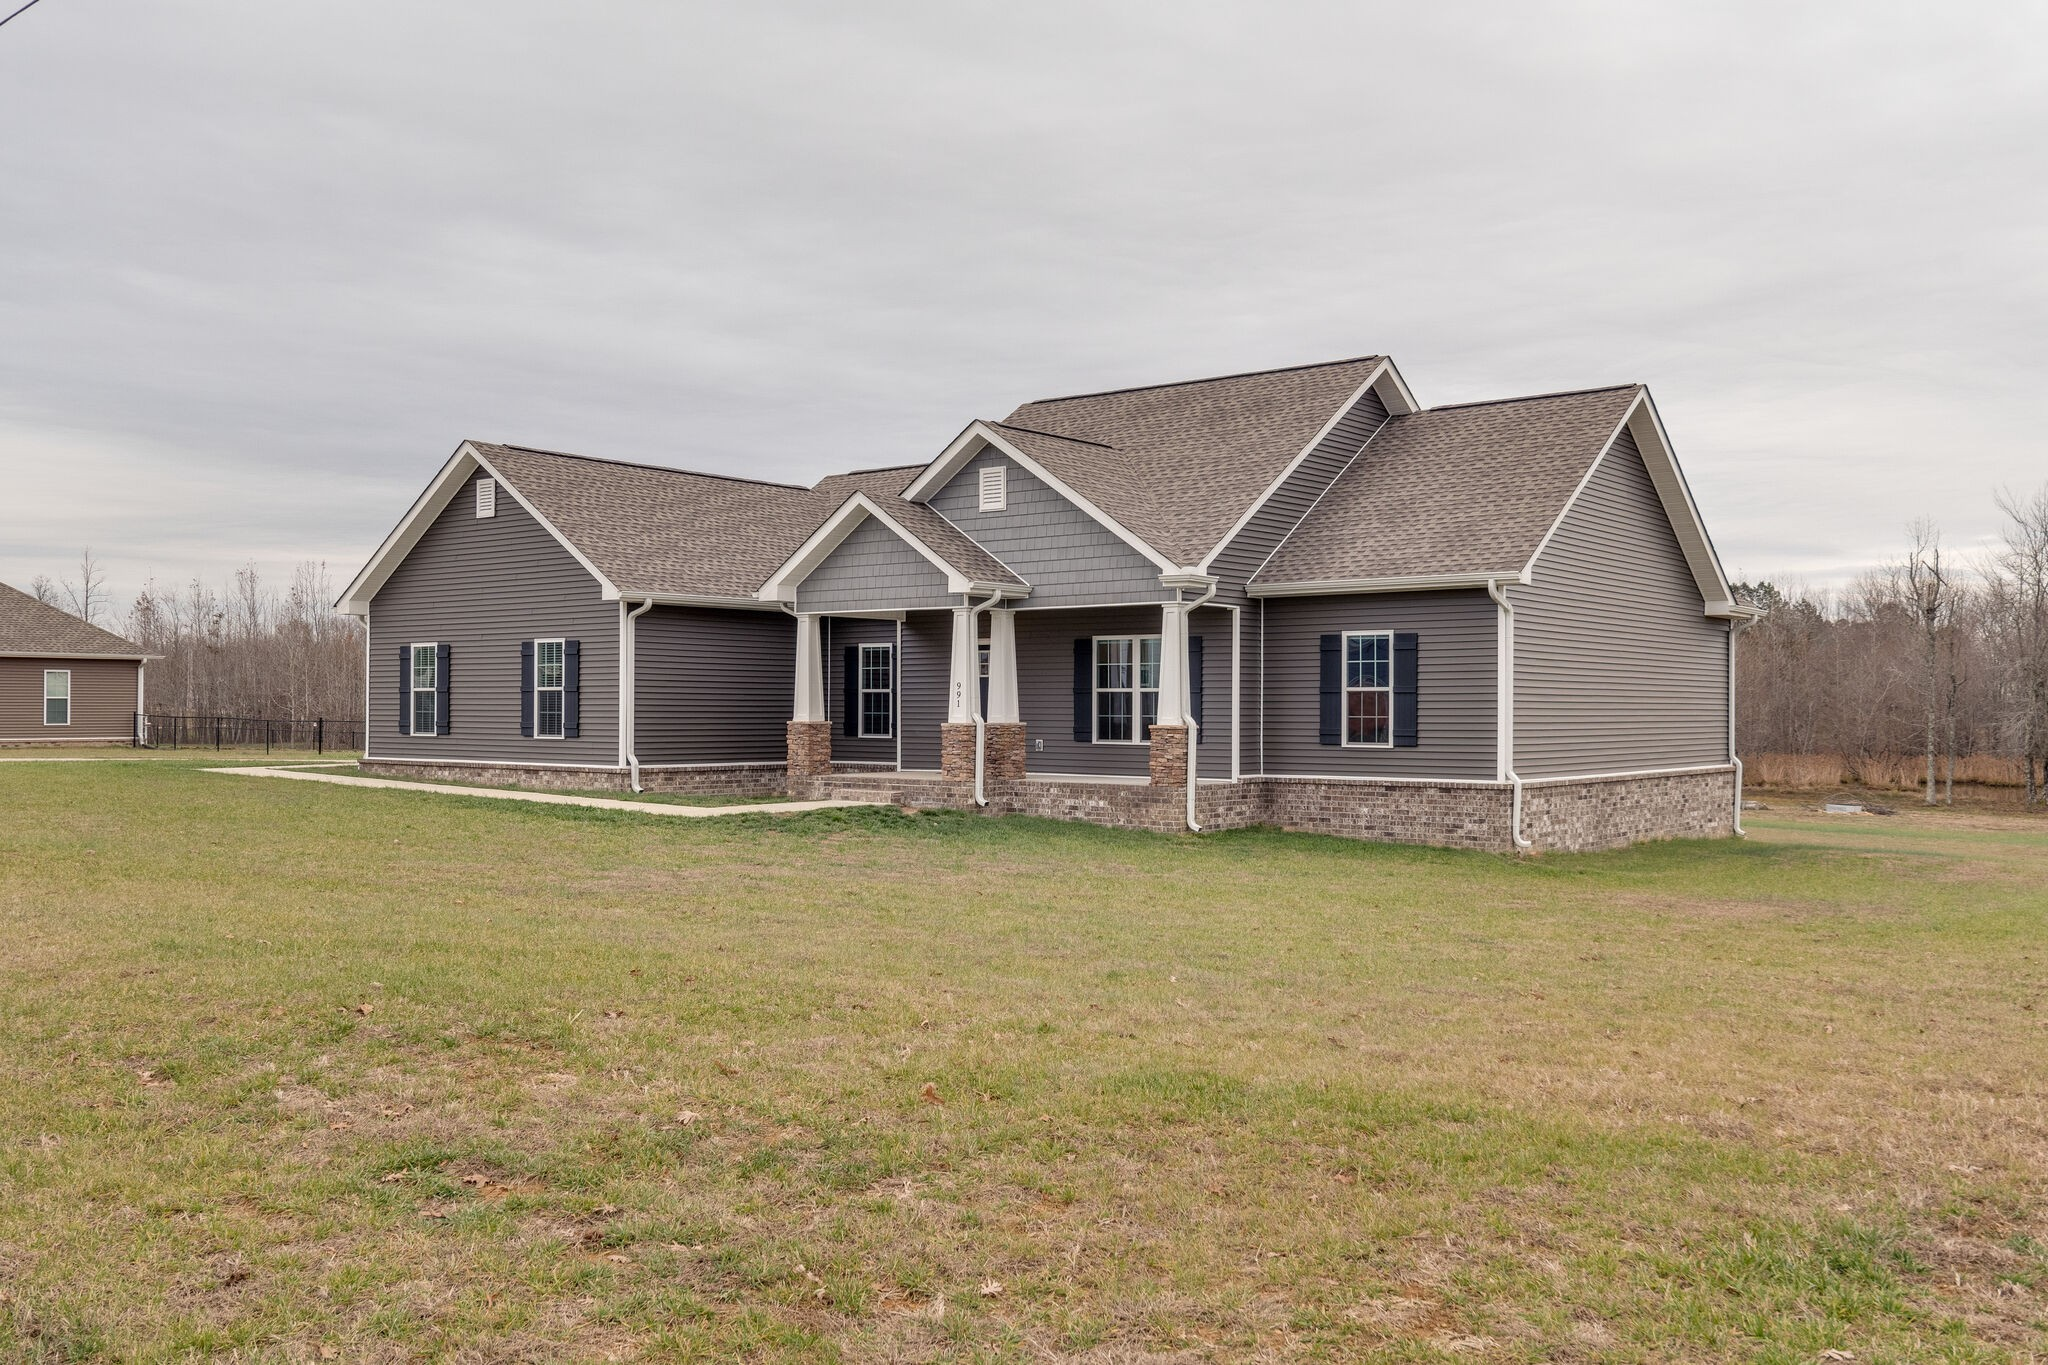 991 Presley Cir Property Photo - Mount Pleasant, TN real estate listing